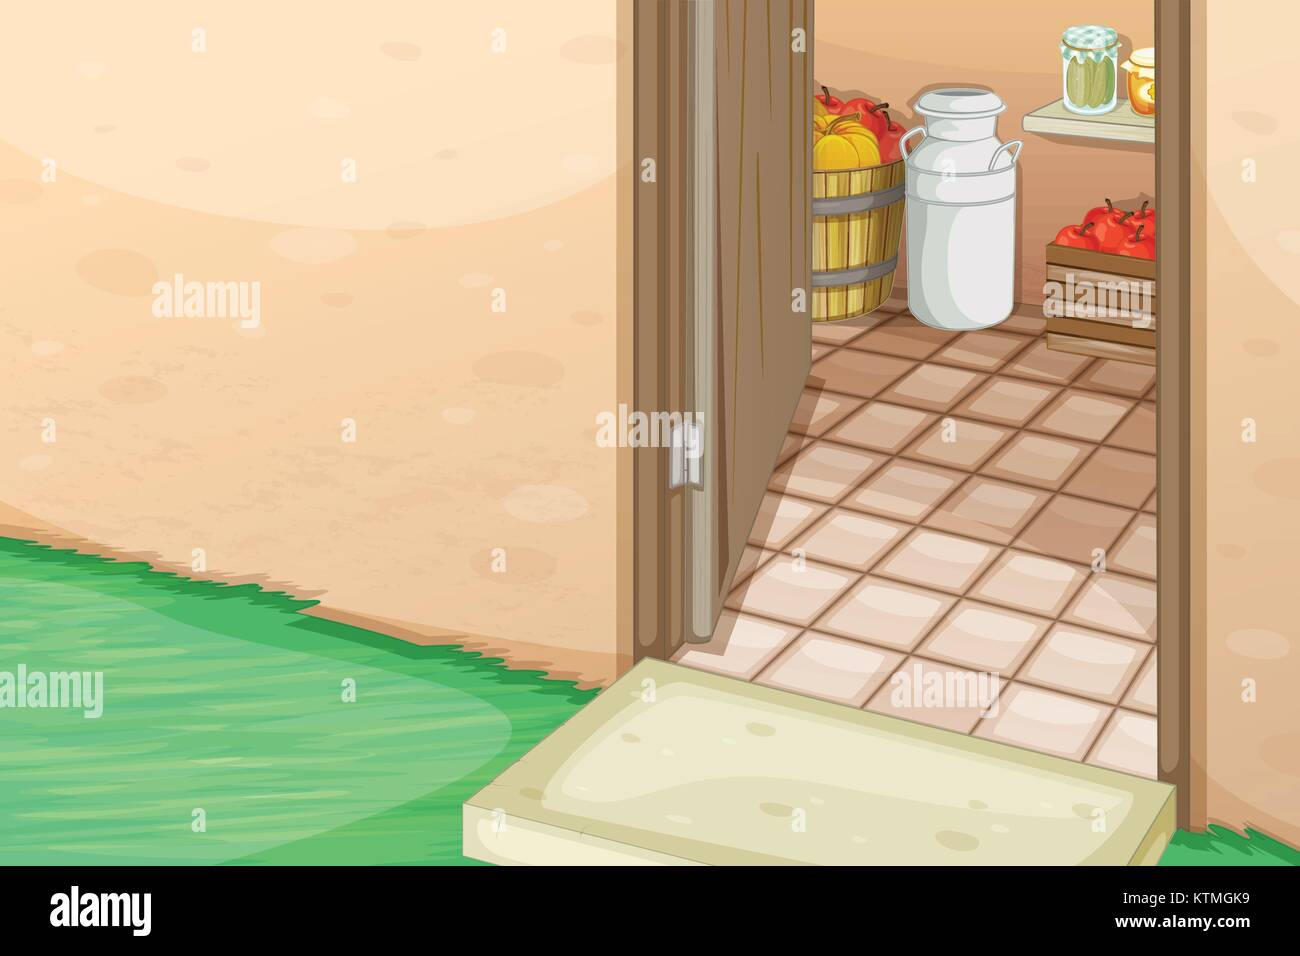 Illustration Cartoon Front Door Inside Stock Photos Illustration